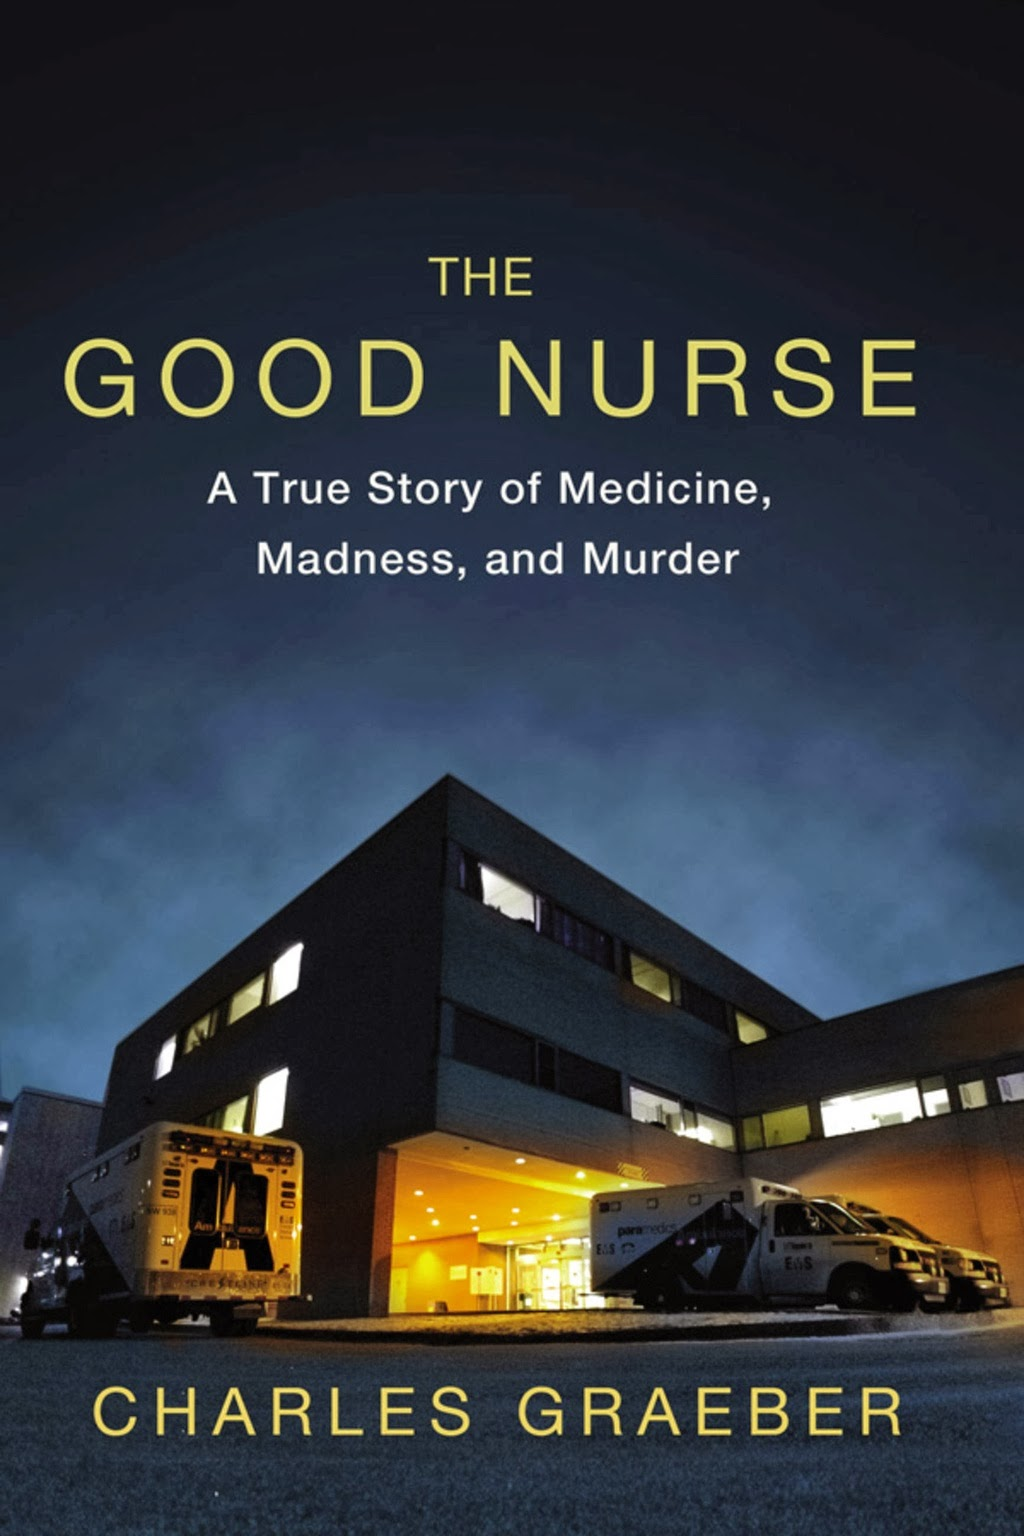 http://discover.halifaxpubliclibraries.ca/?q=title:good%20nurse%20a%20true%20story